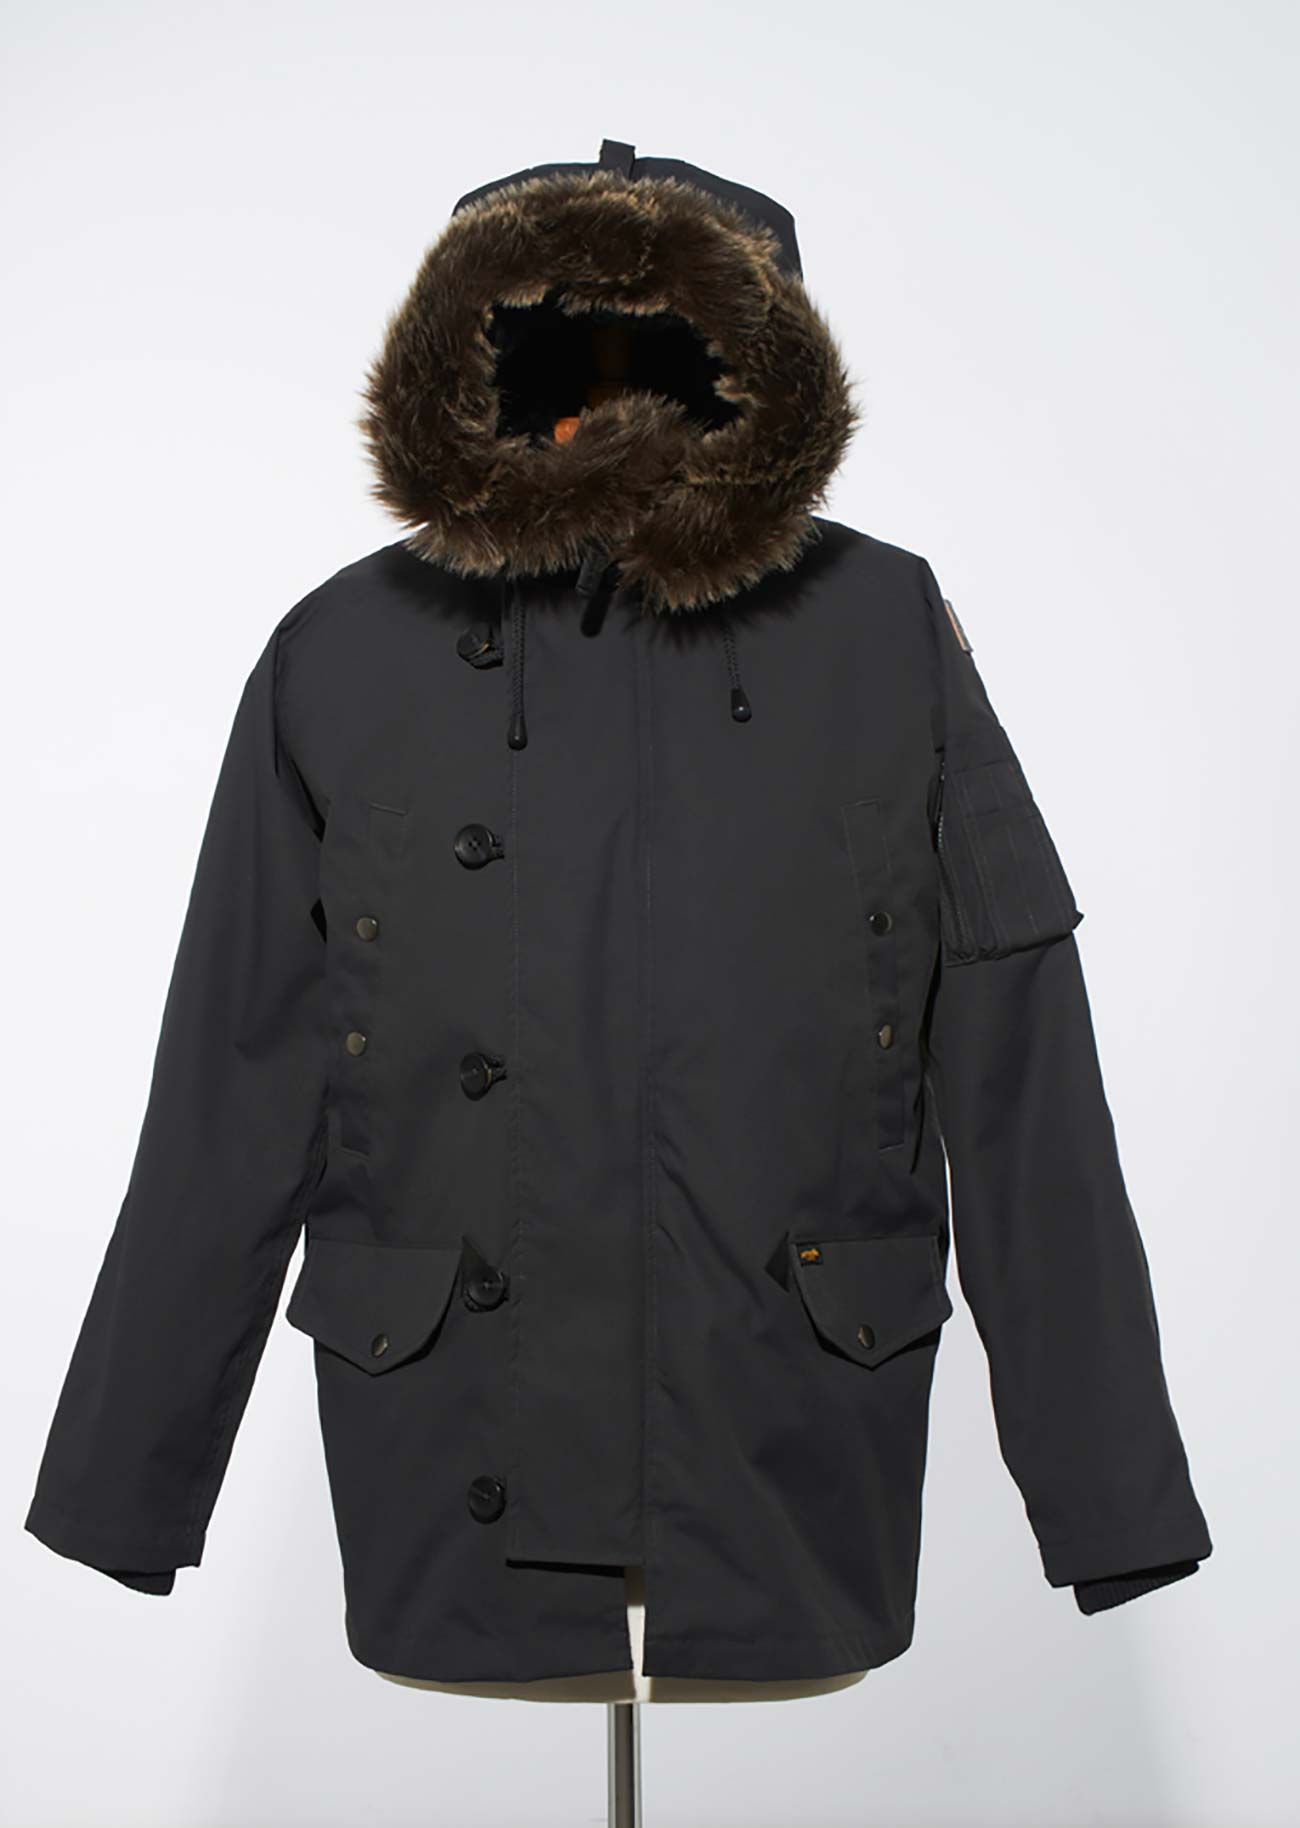 Jimmy Fur Parka Jacket - Grey